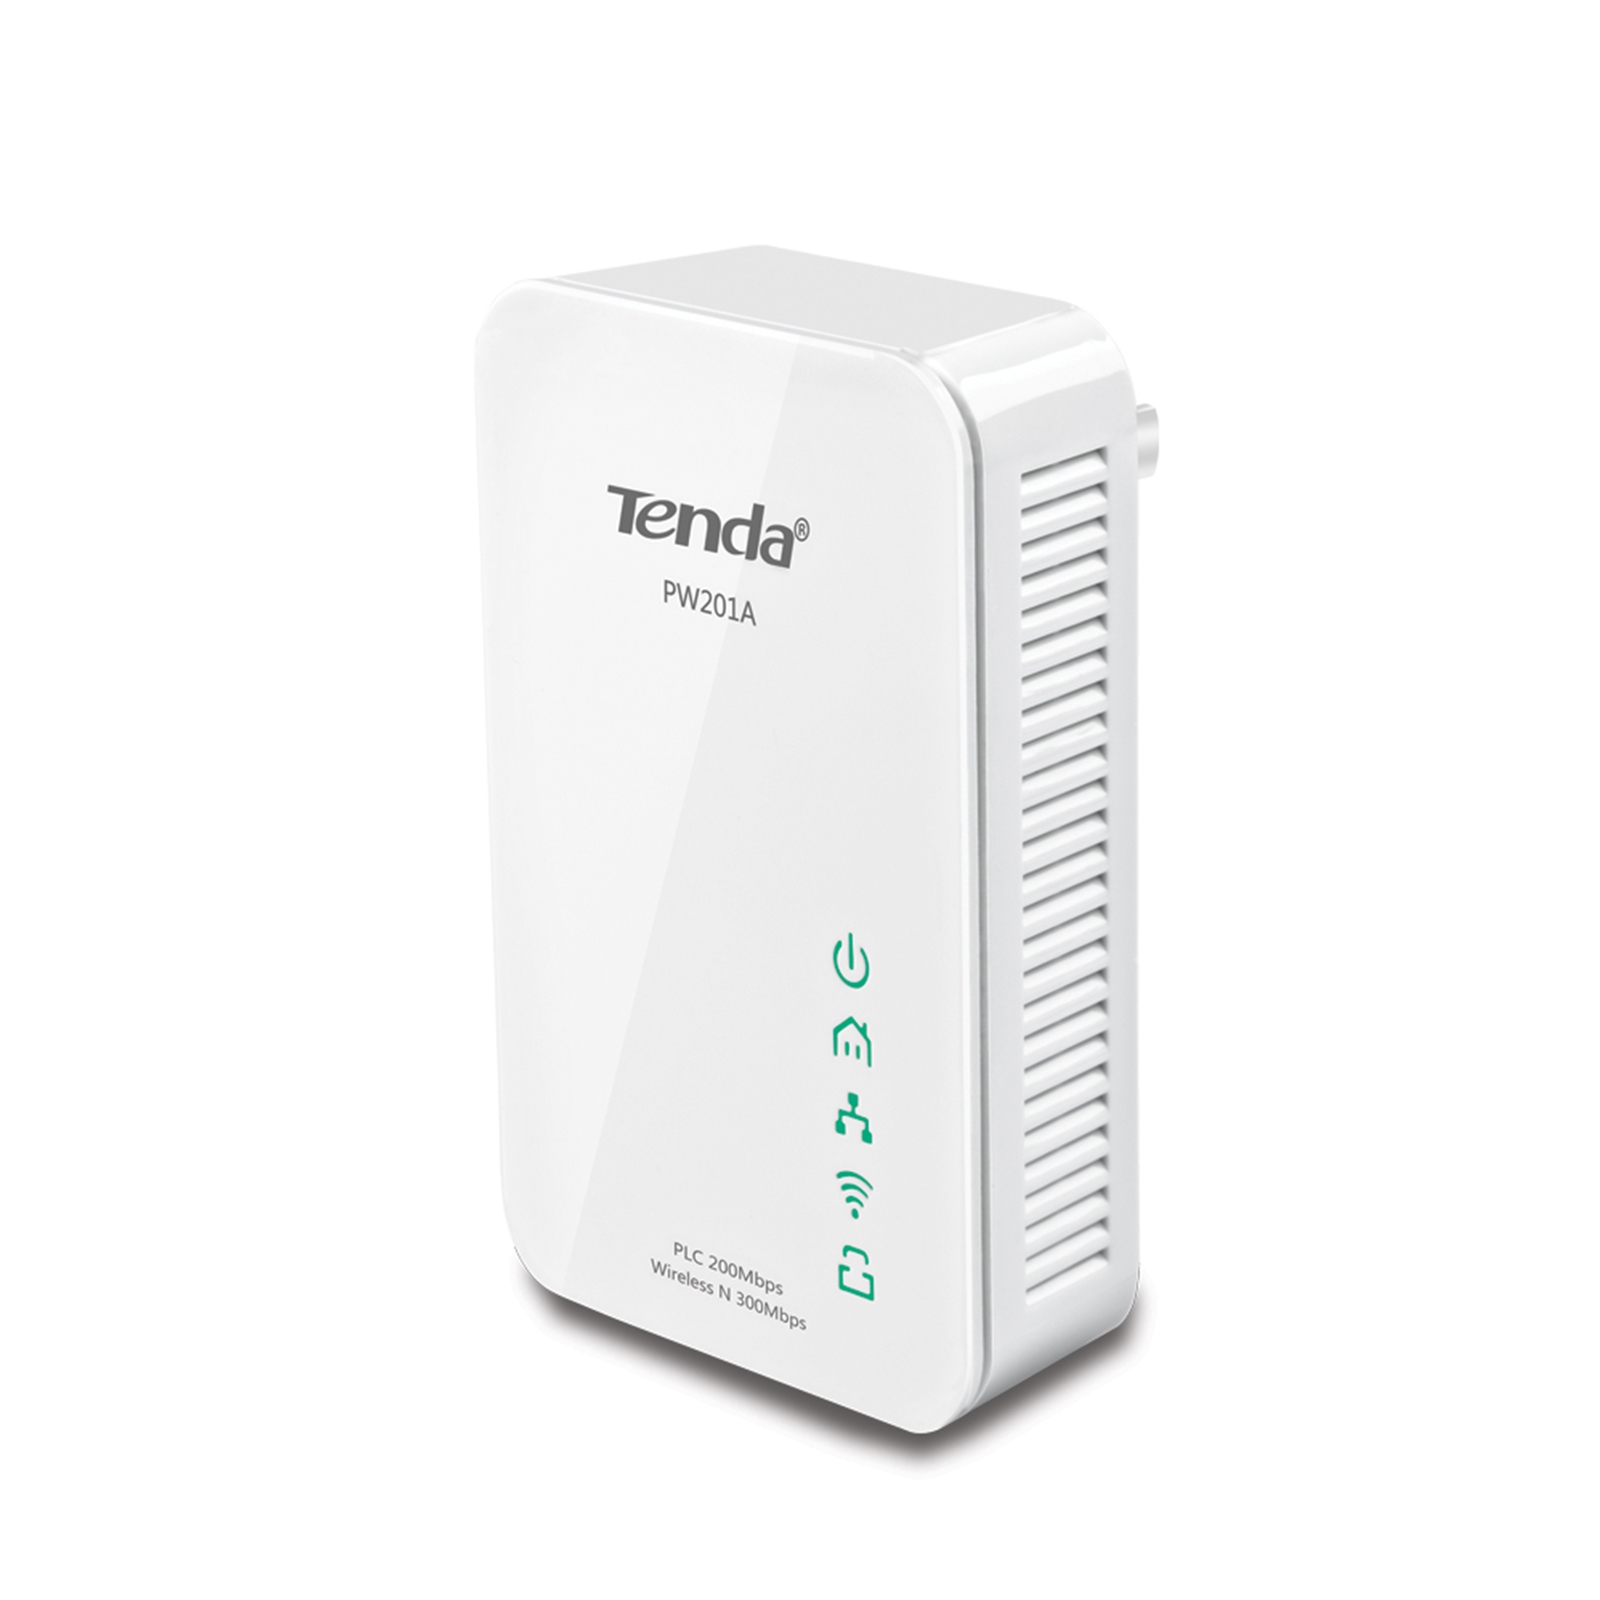 Tenda Wireless Pw201a Powerline N300 Extender Serversplus